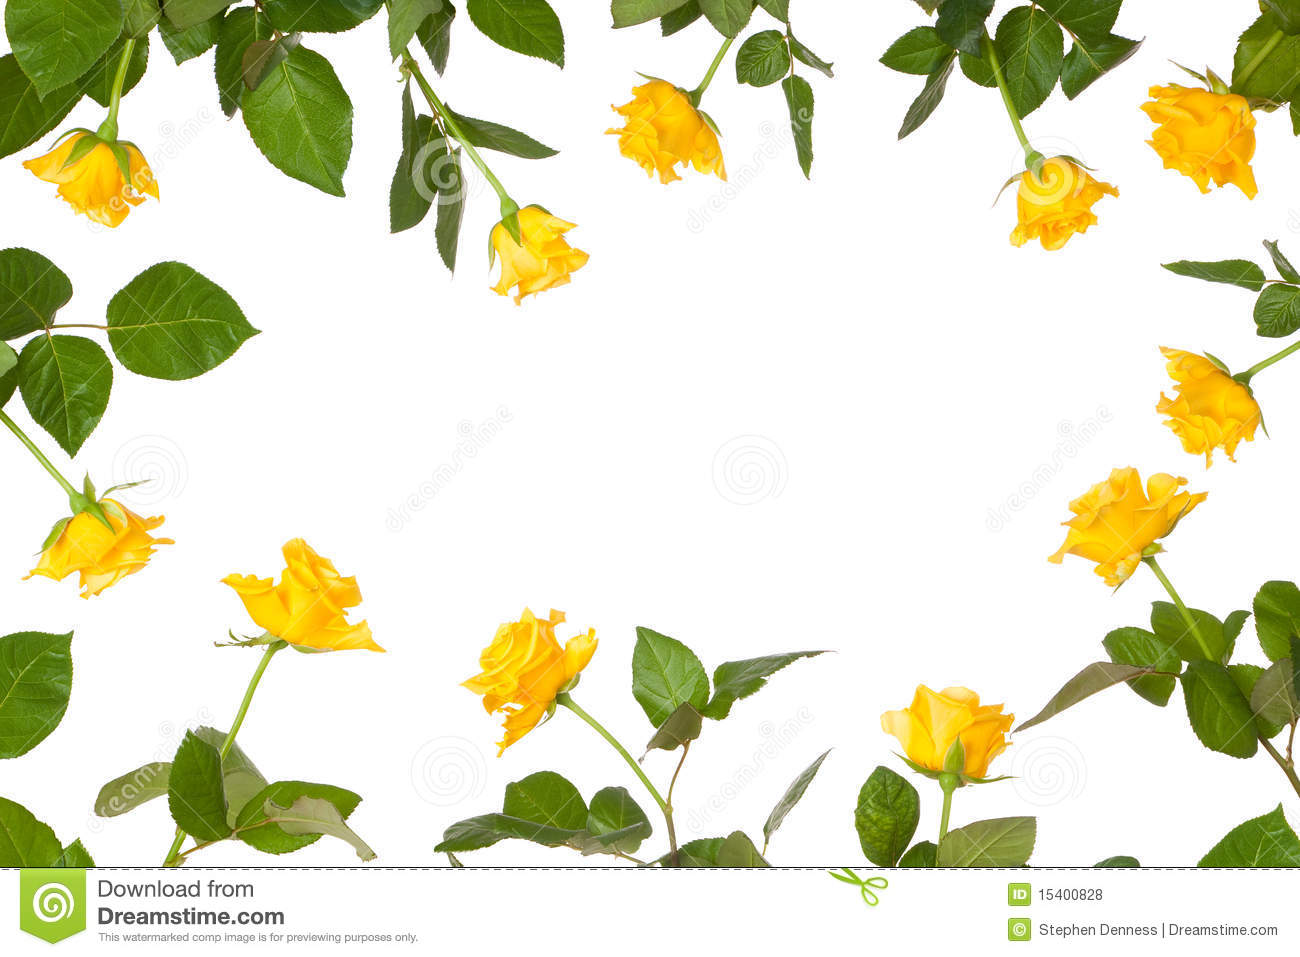 Rose flower stationery border royalty free stock photos image arrangement blank border flower isolated rose dhlflorist Image collections